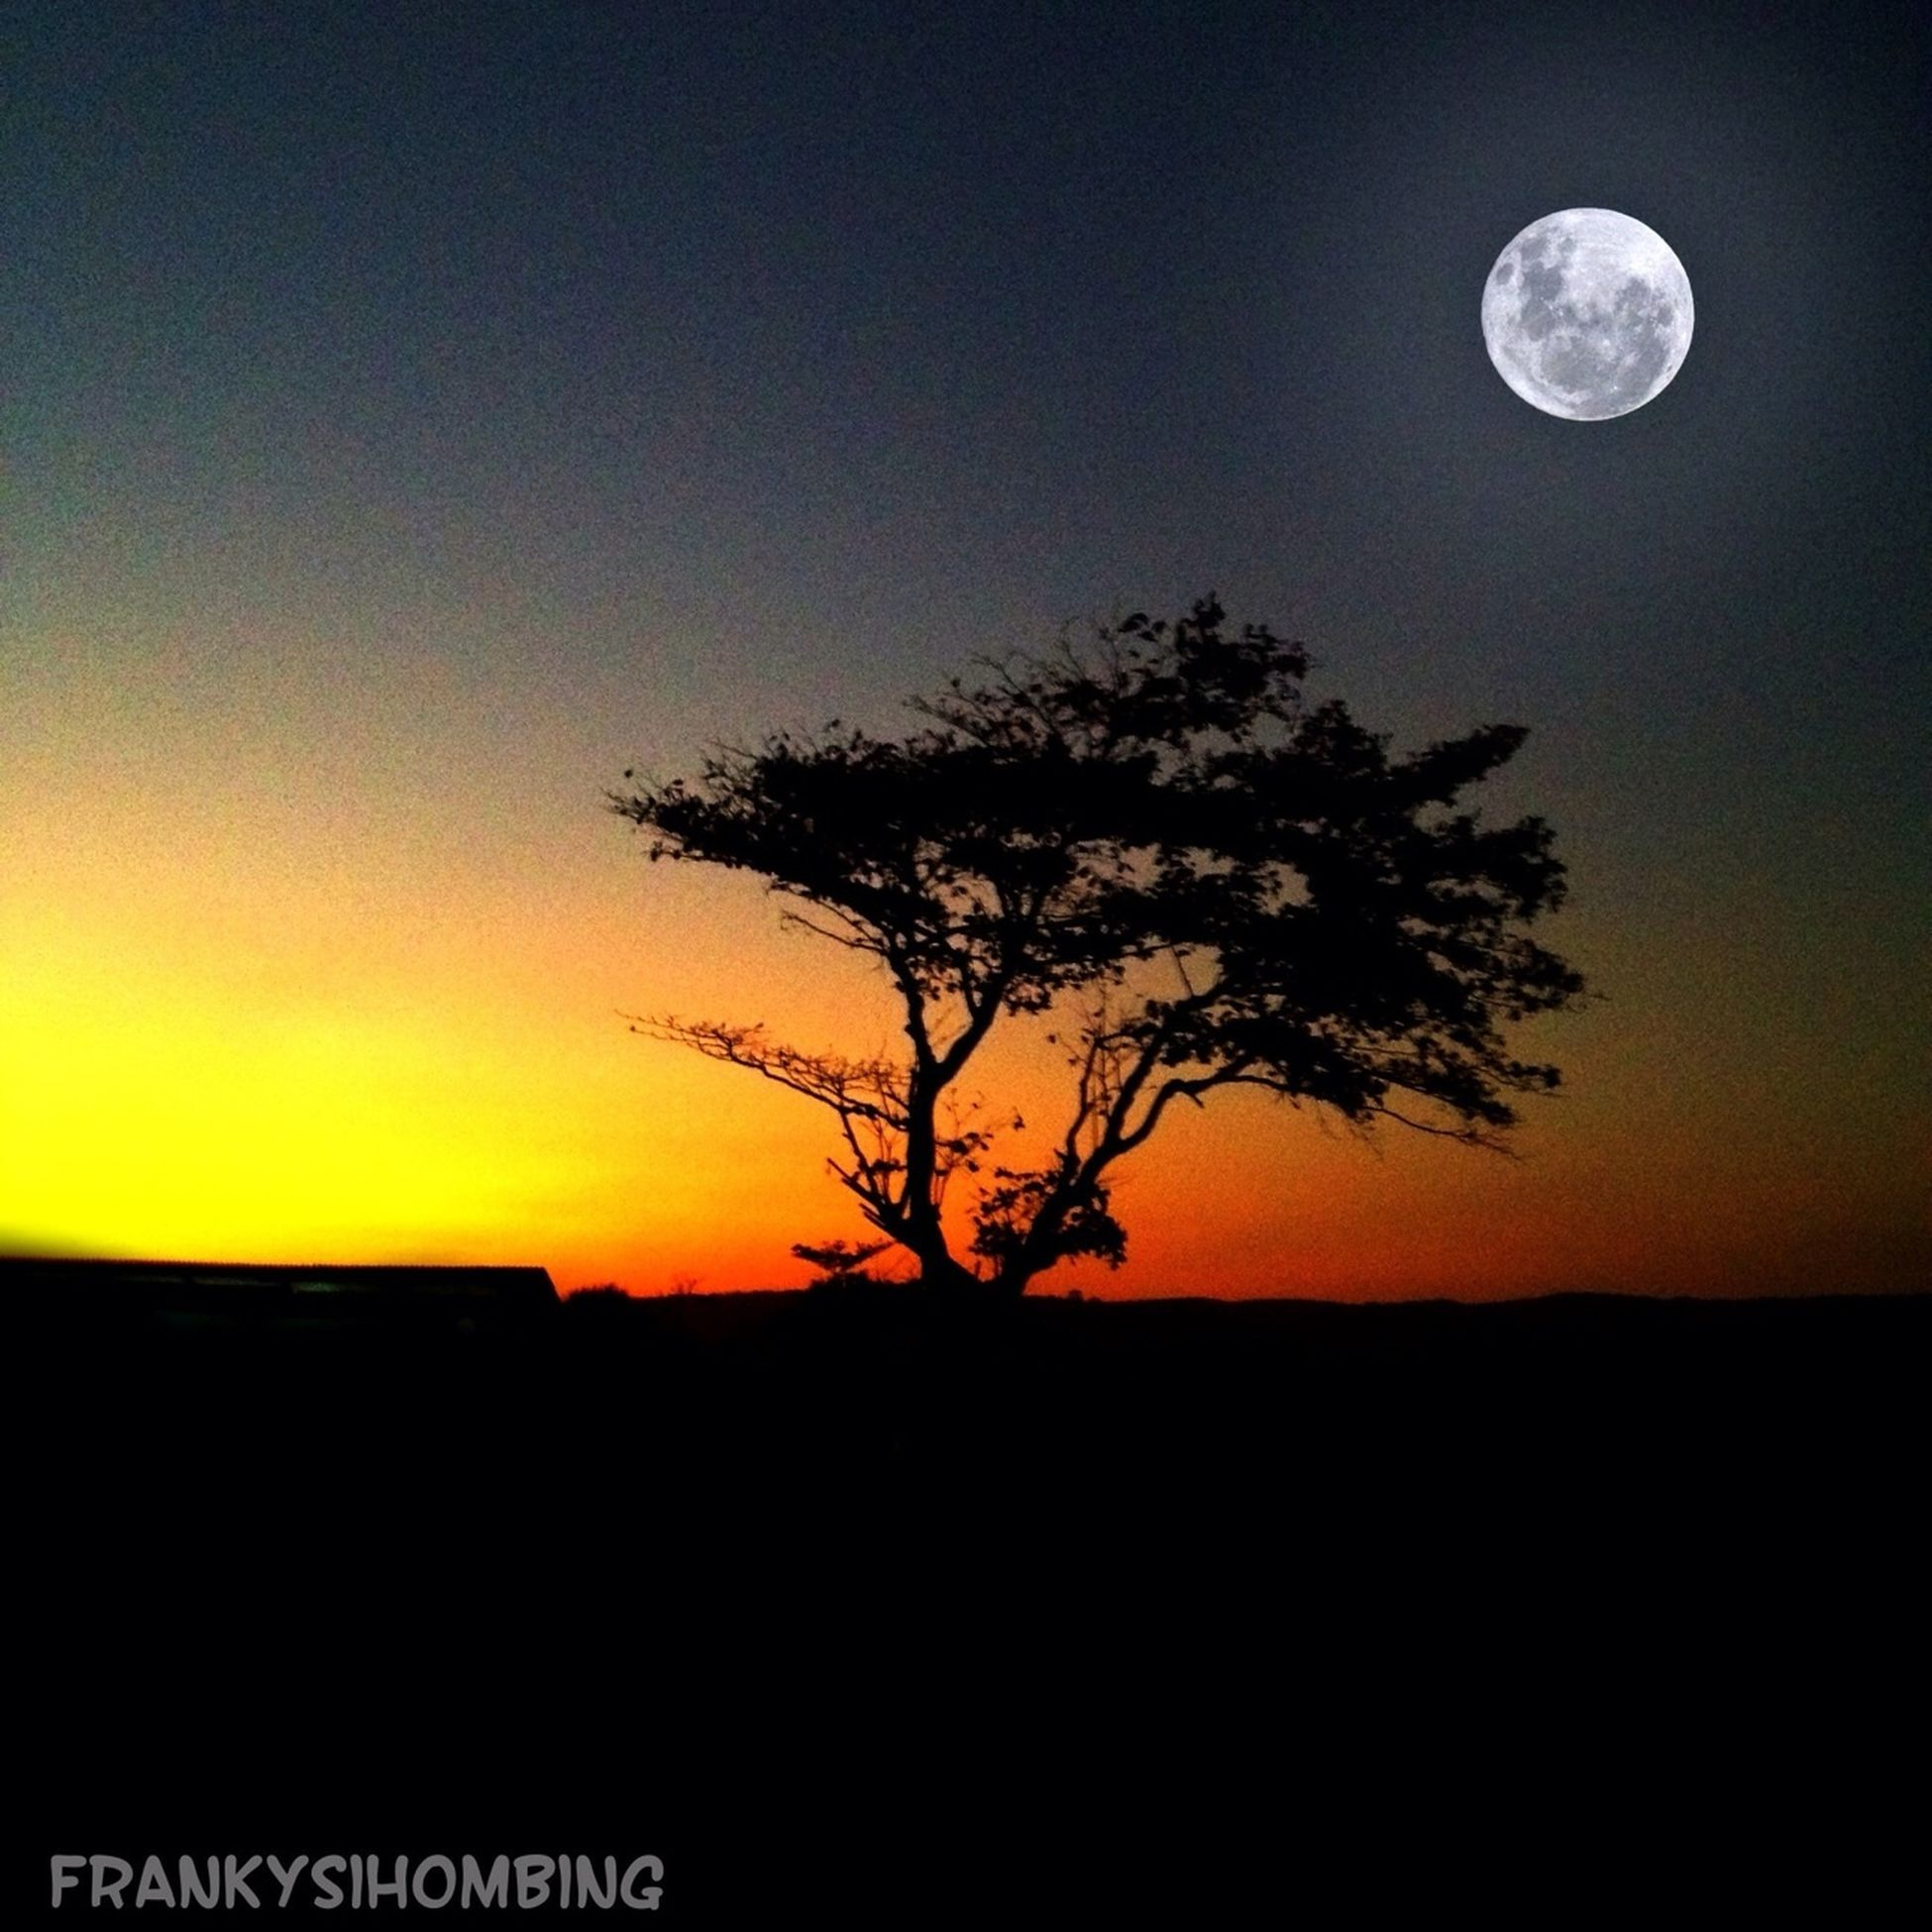 silhouette, sunset, tranquil scene, scenics, tranquility, beauty in nature, moon, bare tree, sky, tree, landscape, copy space, nature, idyllic, dark, dusk, clear sky, field, majestic, full moon